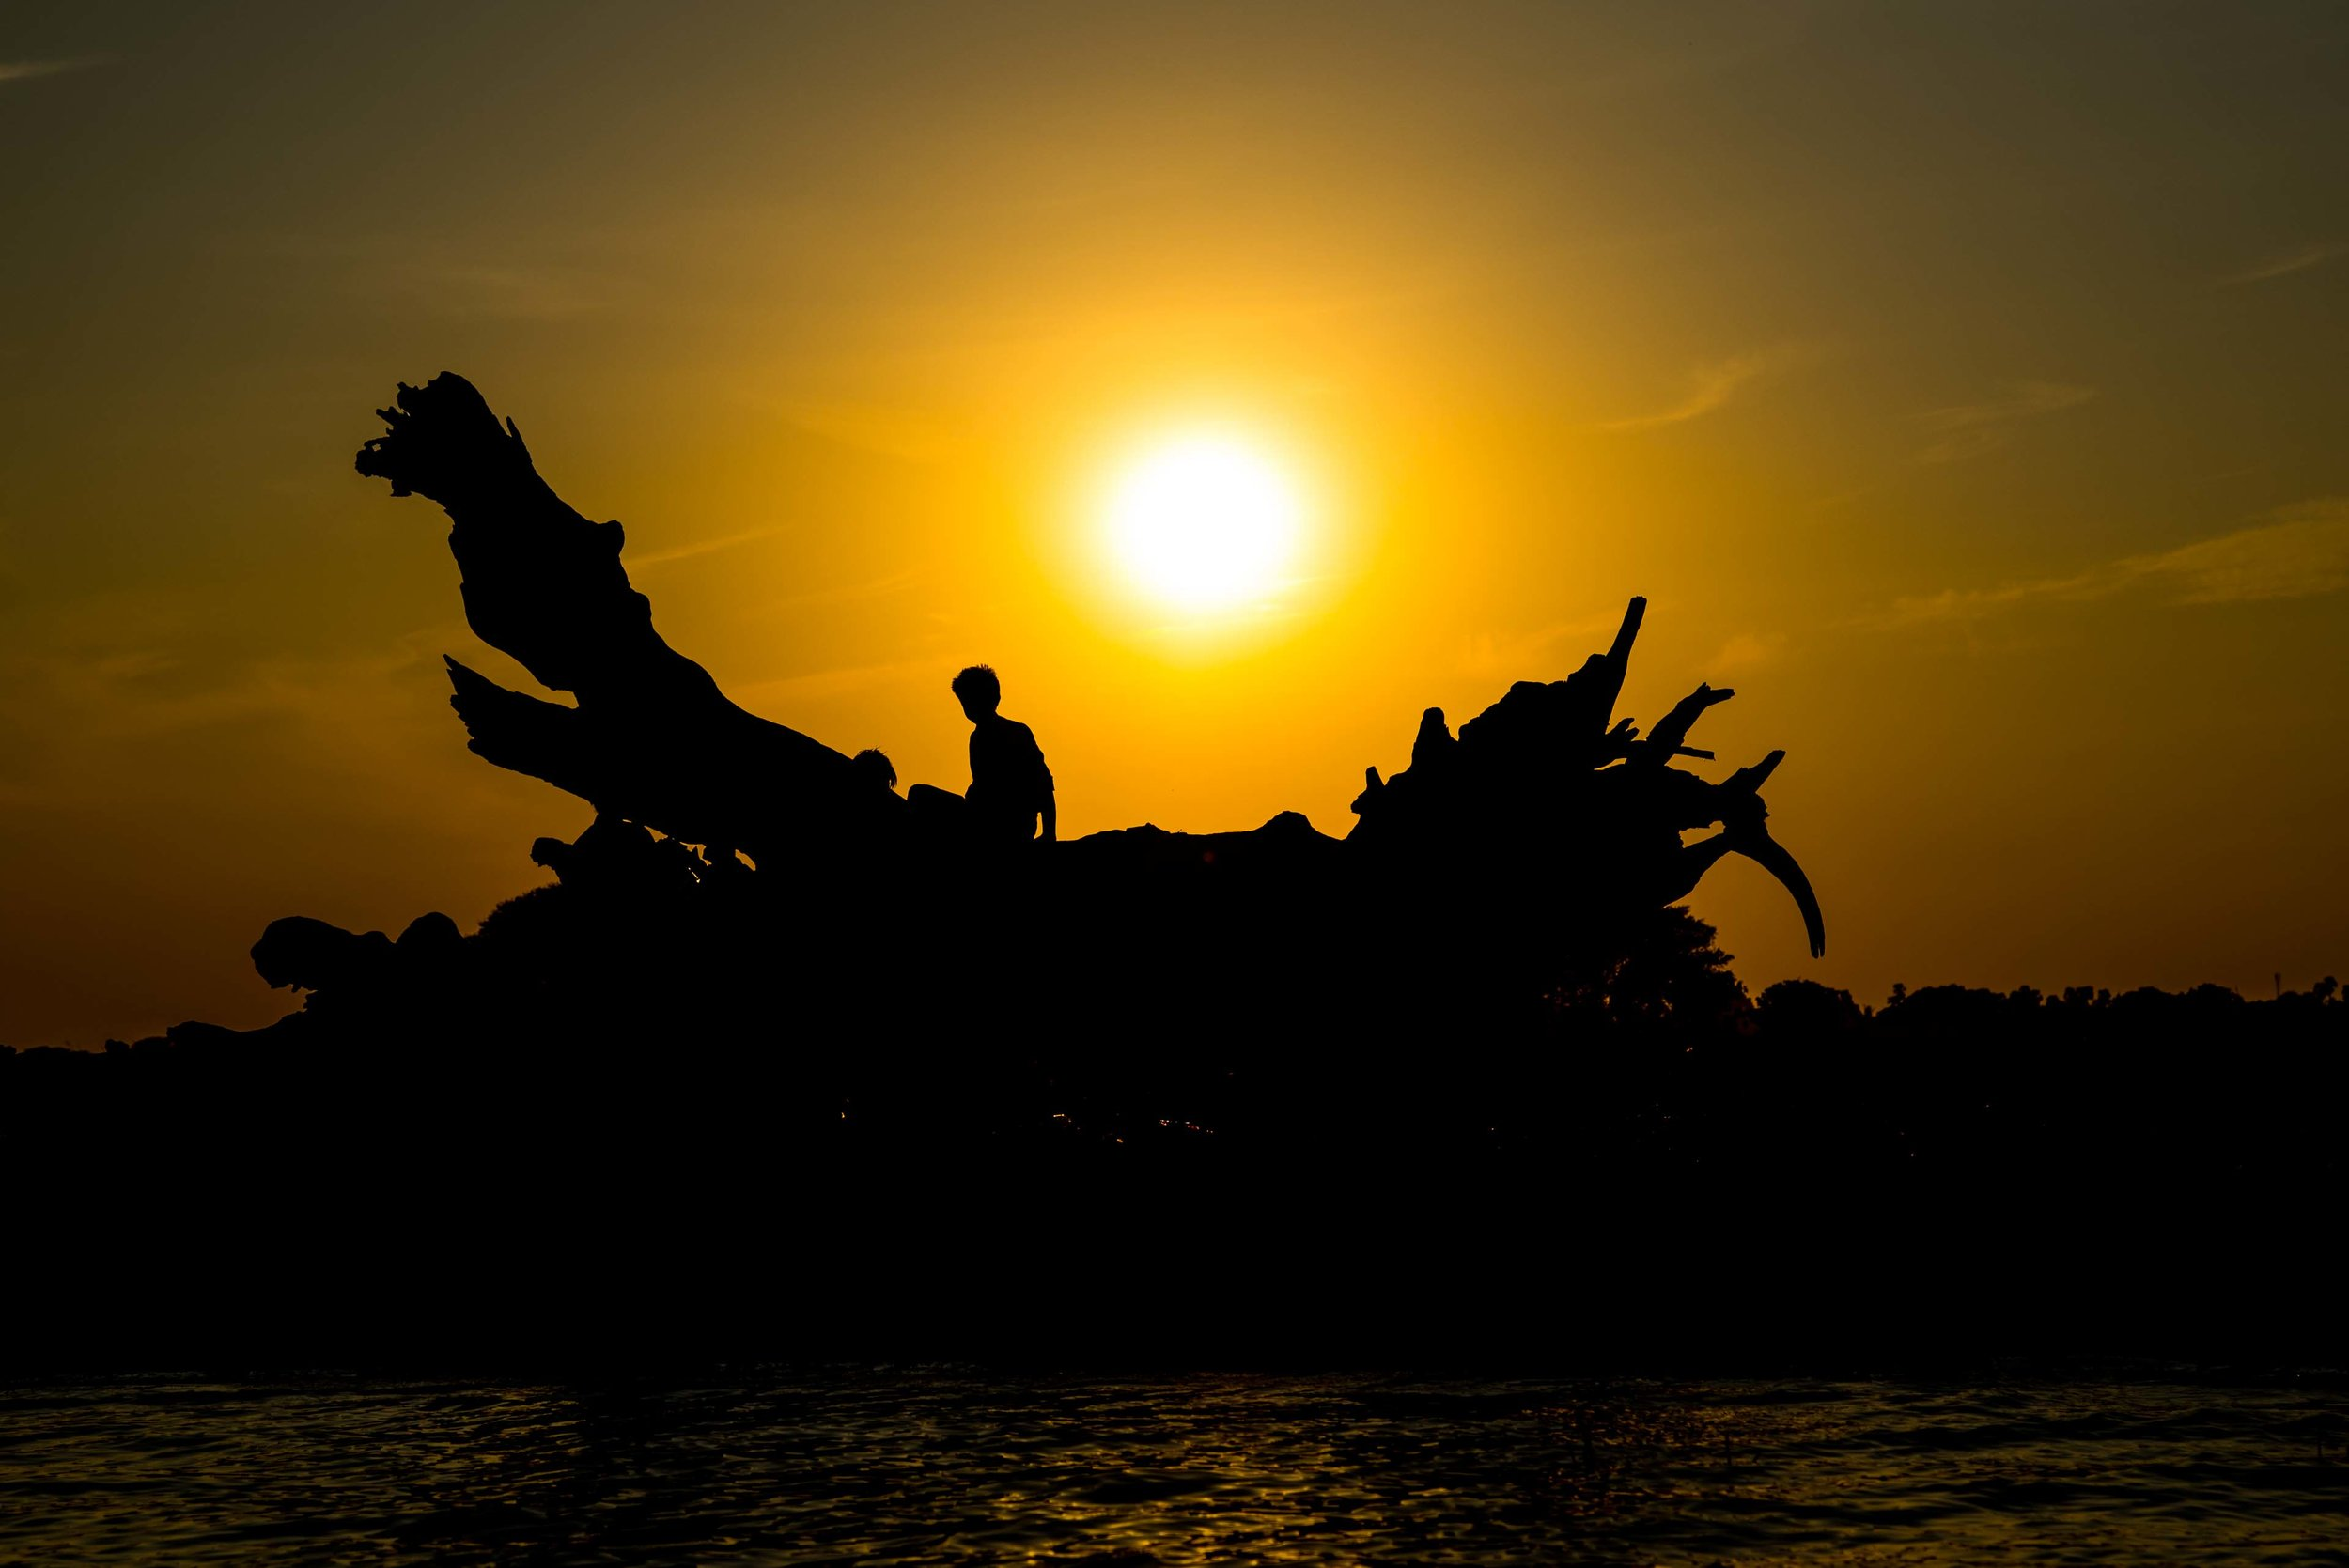 Sunset. Mandalay, Myanmar 2015